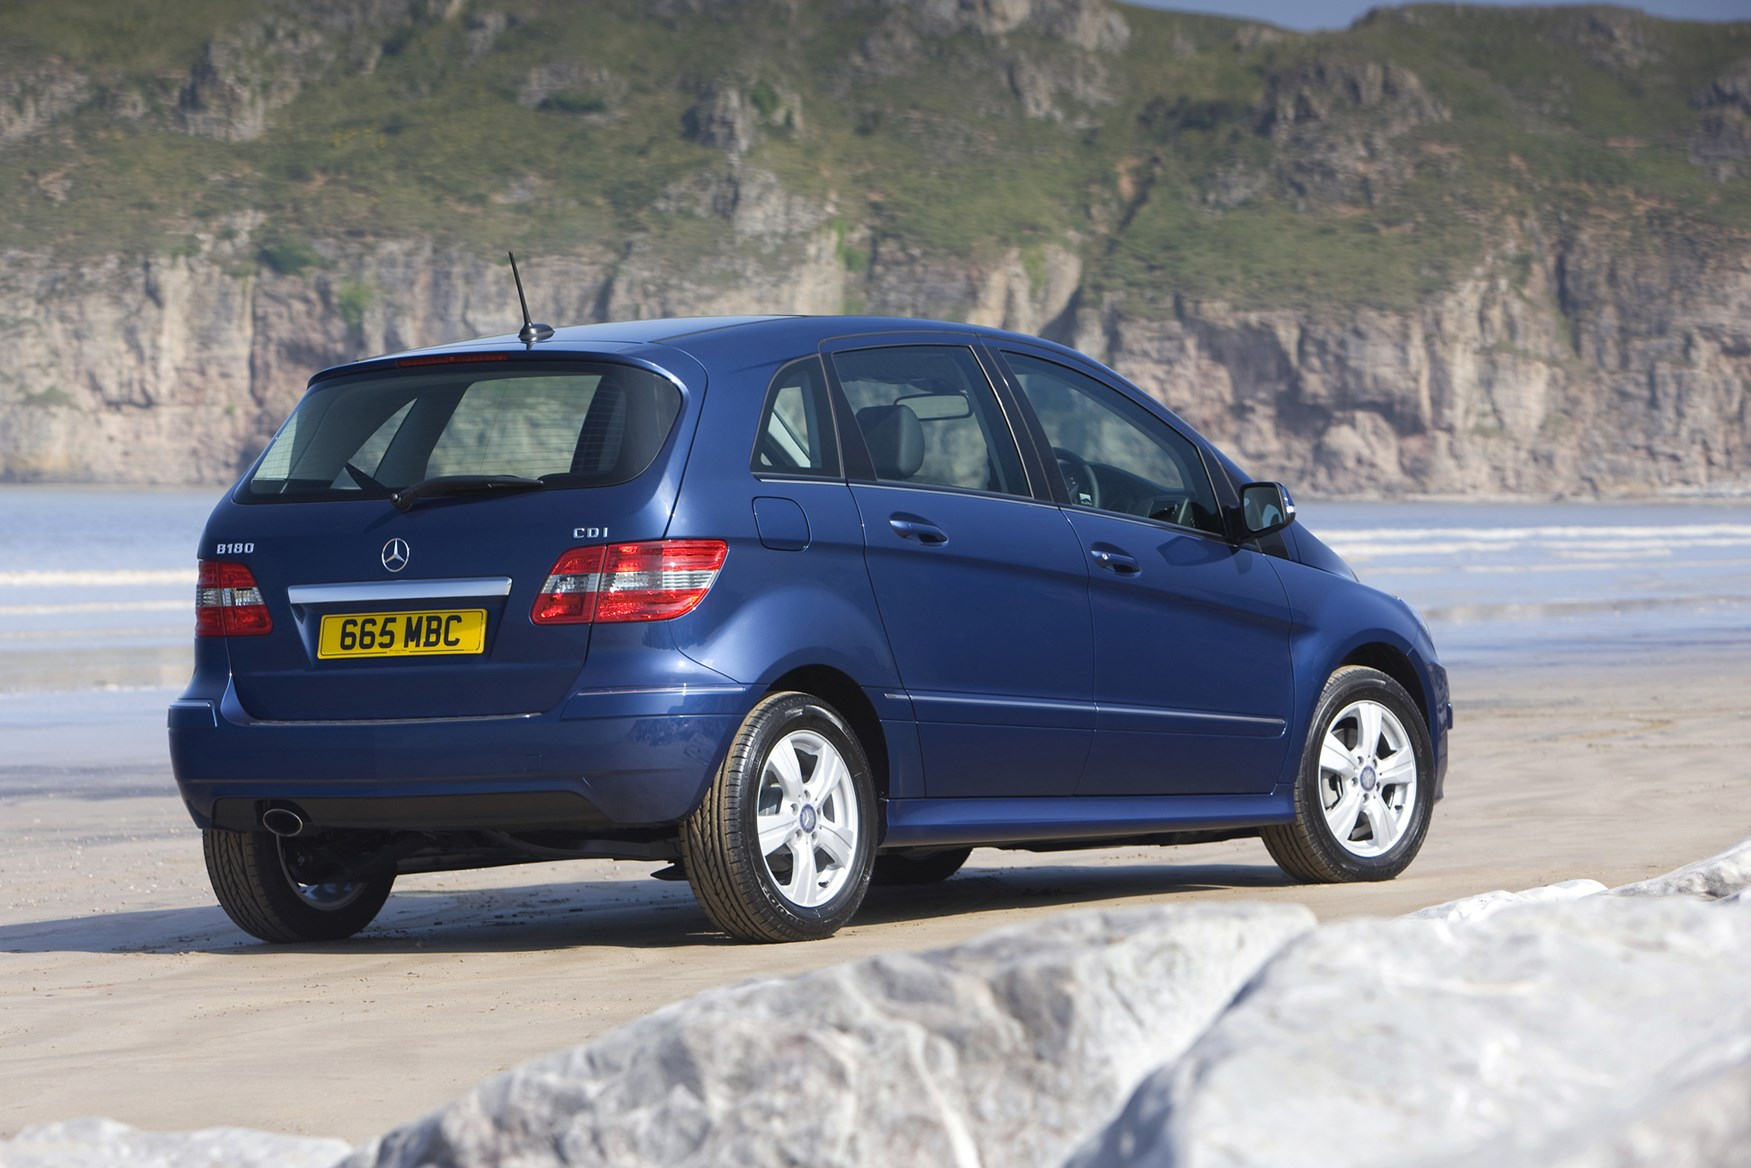 Used Mercedes-Benz B-Class Hatchback (2005 - 2011) Review   Parkers